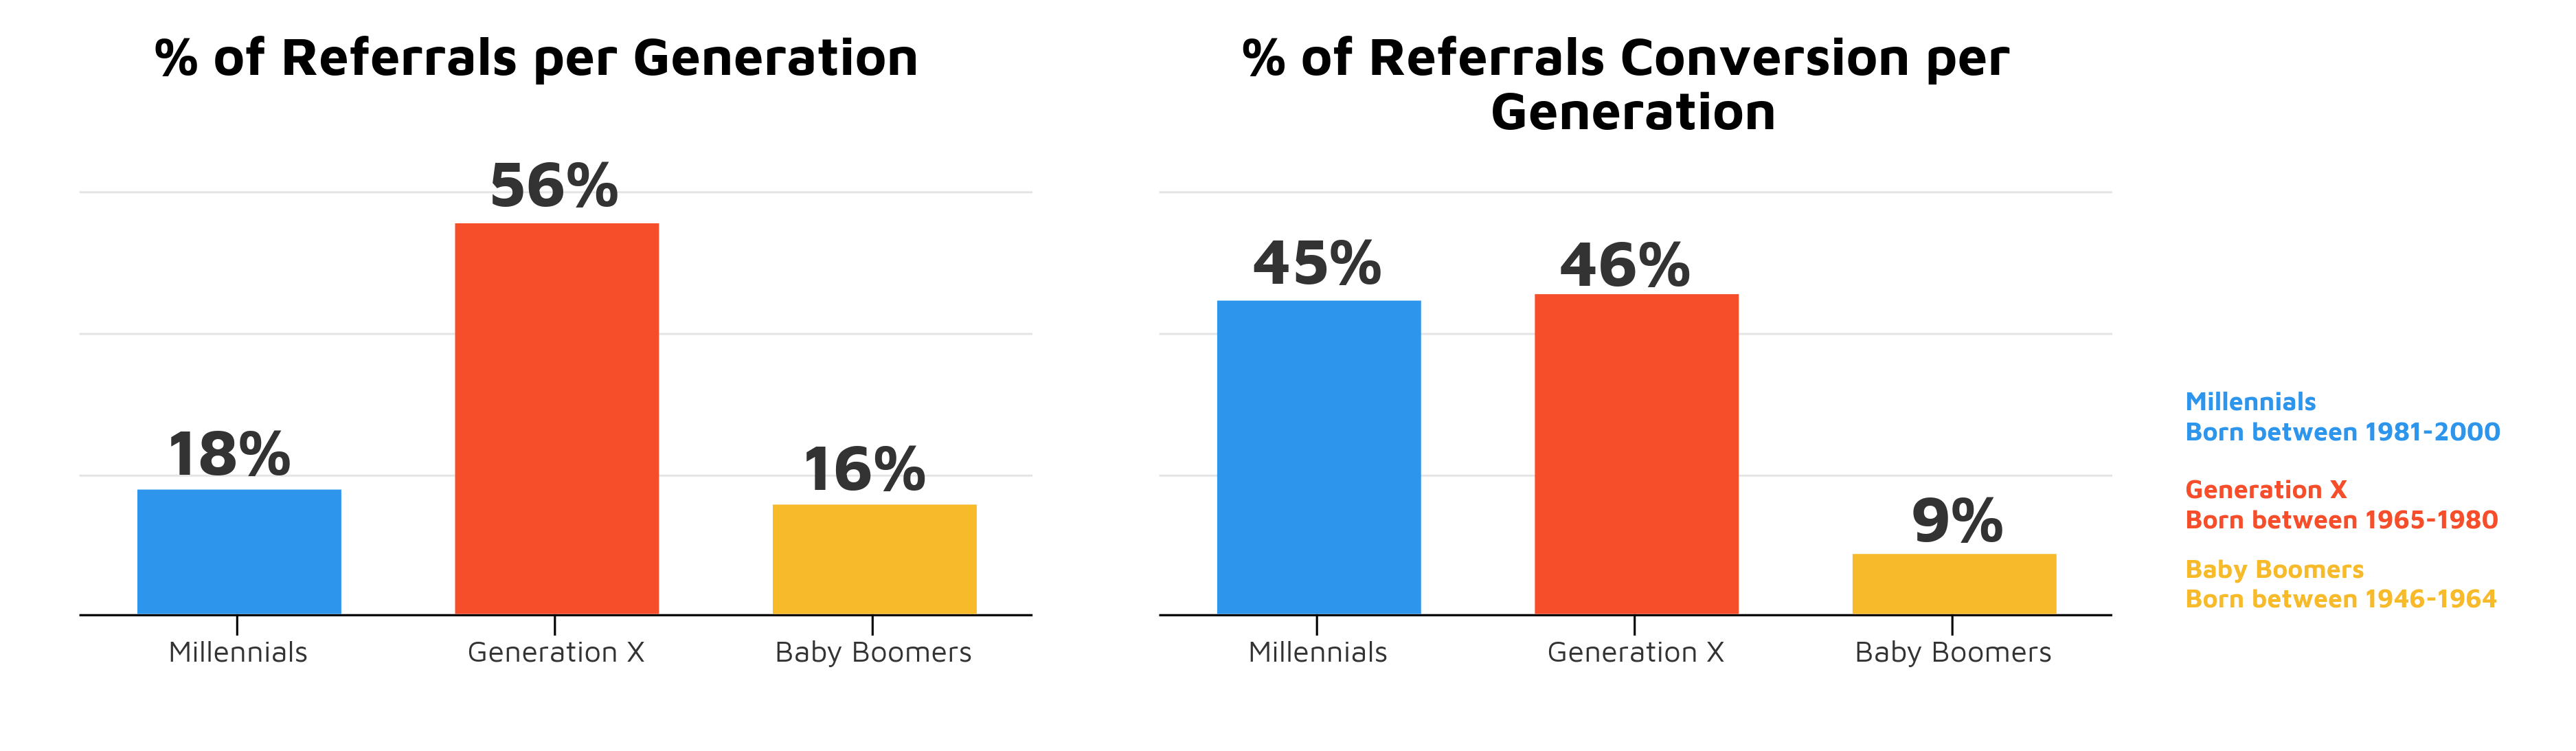 Referrals and Generations